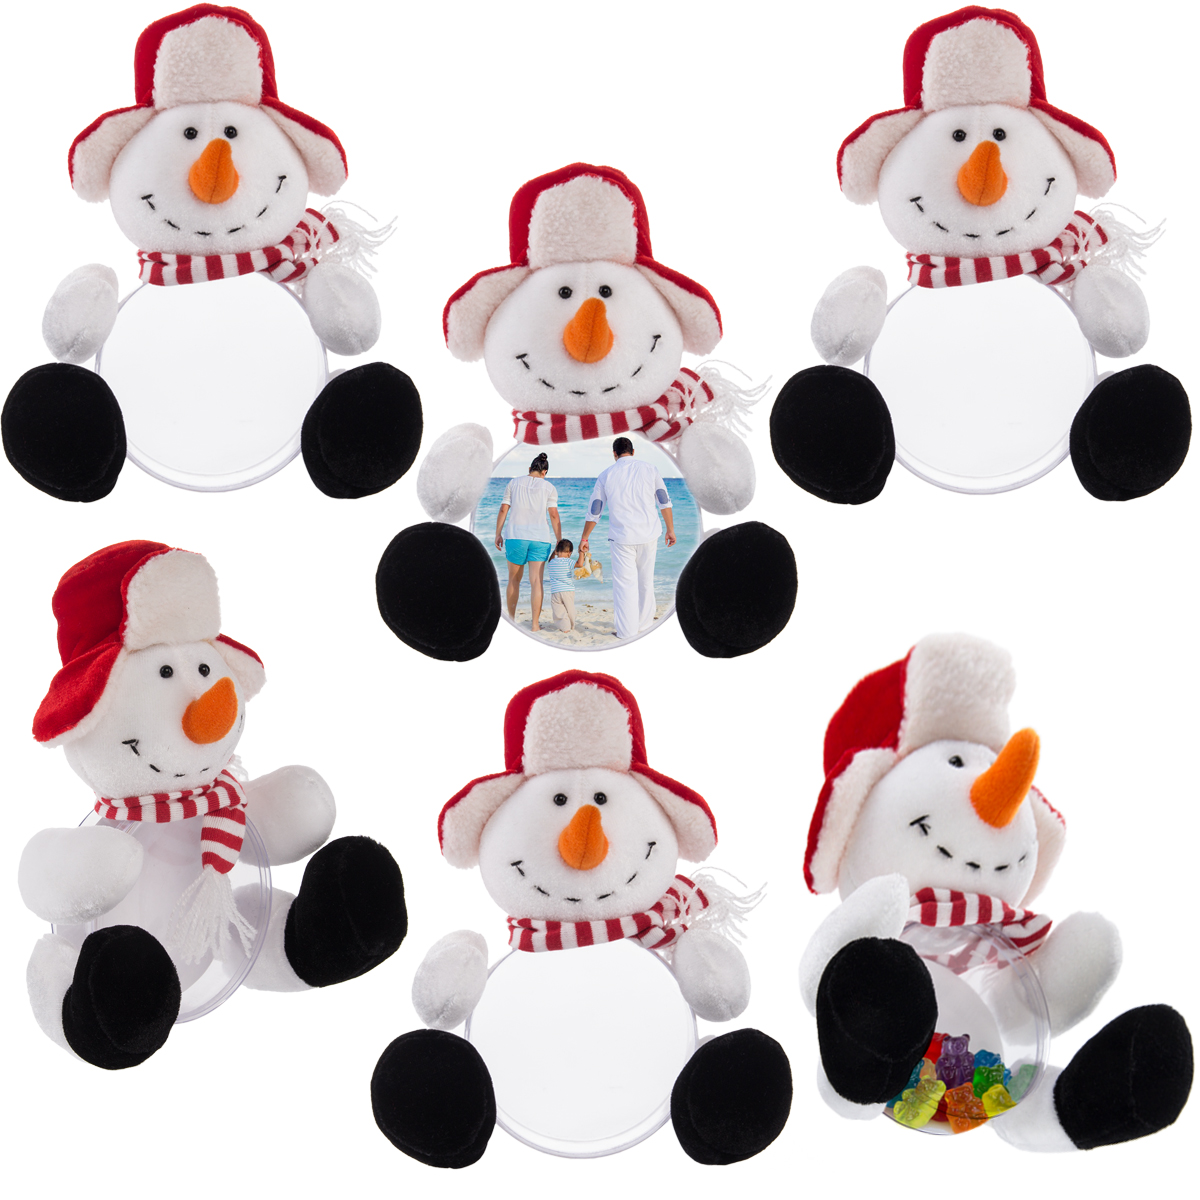 6 Snowman Plush Picture Frame Christmas Trinket Box Holiday Gift Set Kids Adults